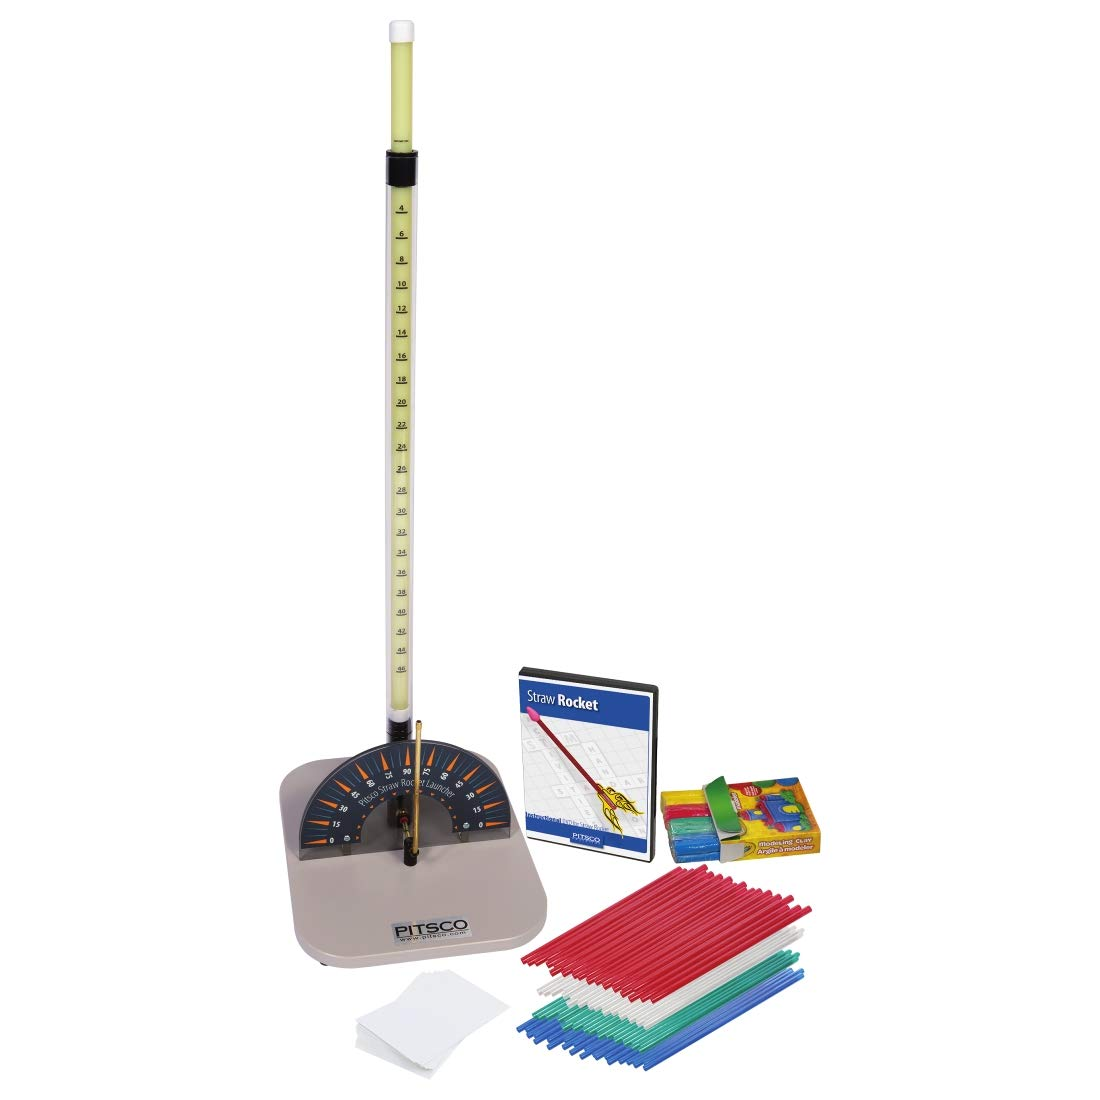 Pitsco Straw Rockets - Getting Started Package (For 30 Students)